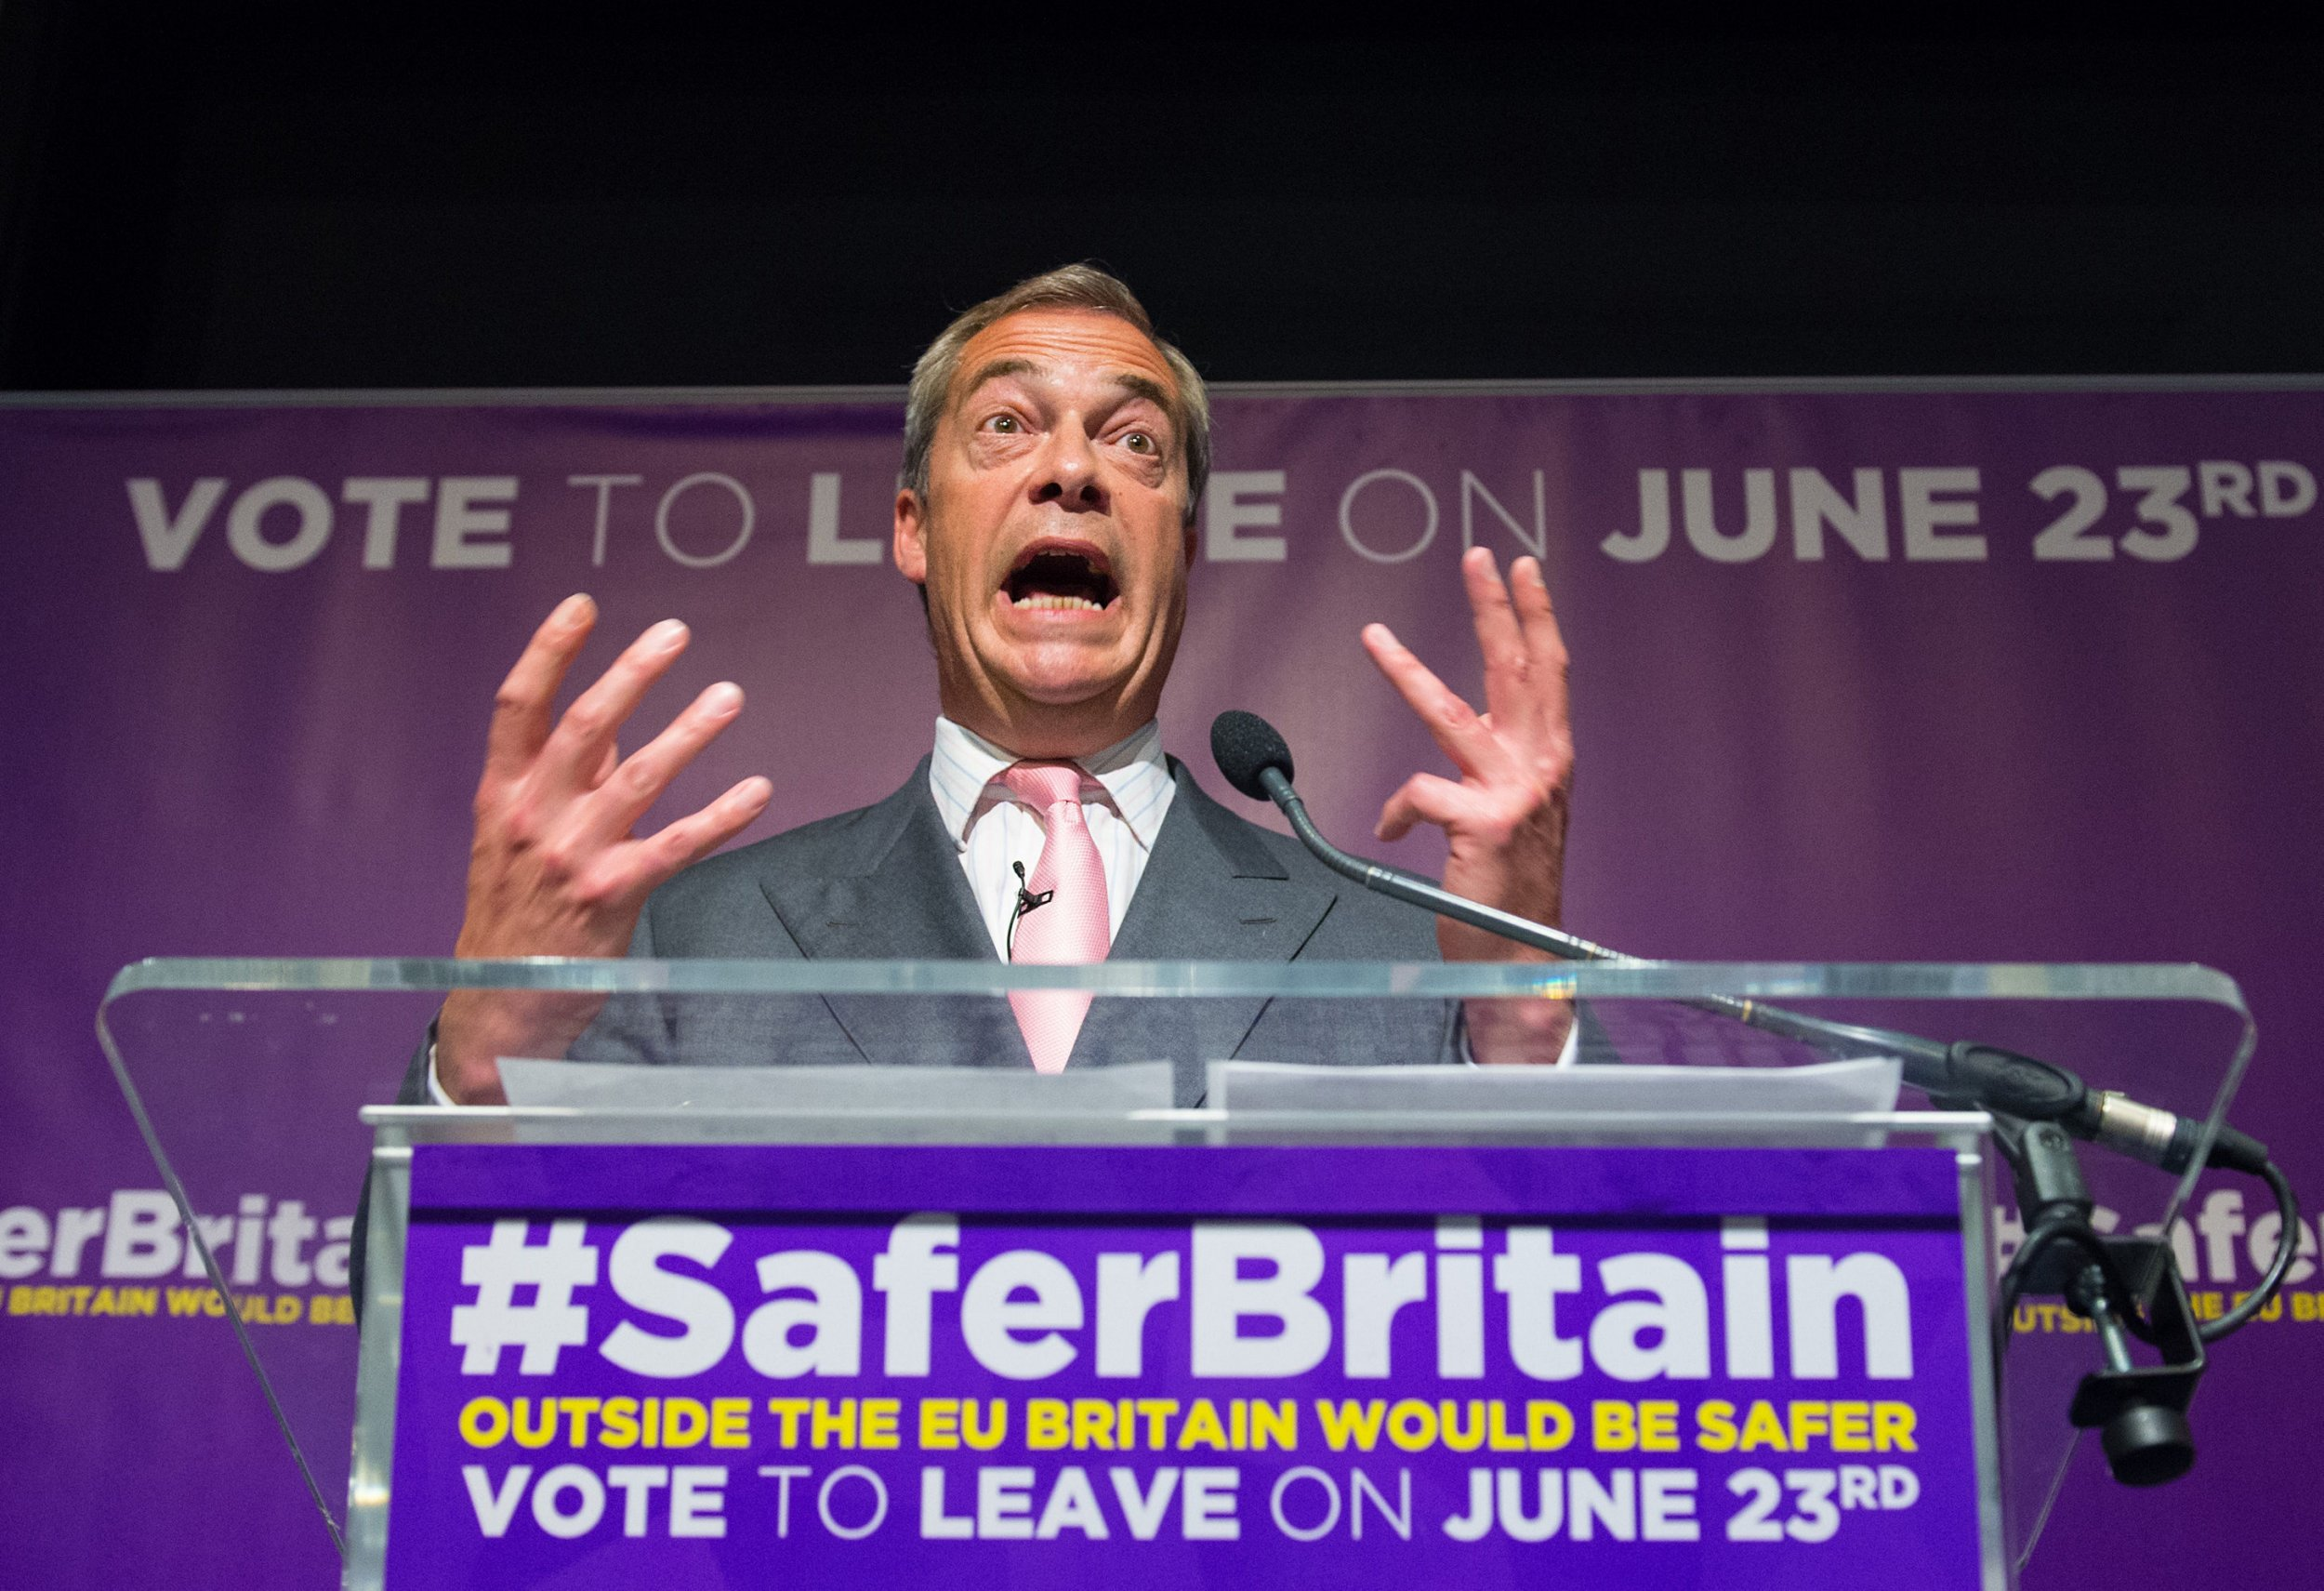 RETRANSMITTING CLARIFYING IT IS A UKIP NOT A VOTE LEAVE EVENT CORRECT CAPTION BELOW Ukip leader Nigel Farage giving a speech on immigration at a Ukip European referendum campaign event at One George Street in Westminster, London. PRESS ASSOCIATION Photo. Picture date: Friday June 3, 2016. See PA story POLITICS EU. Photo credit should read: Dominic Lipinski/PA Wire